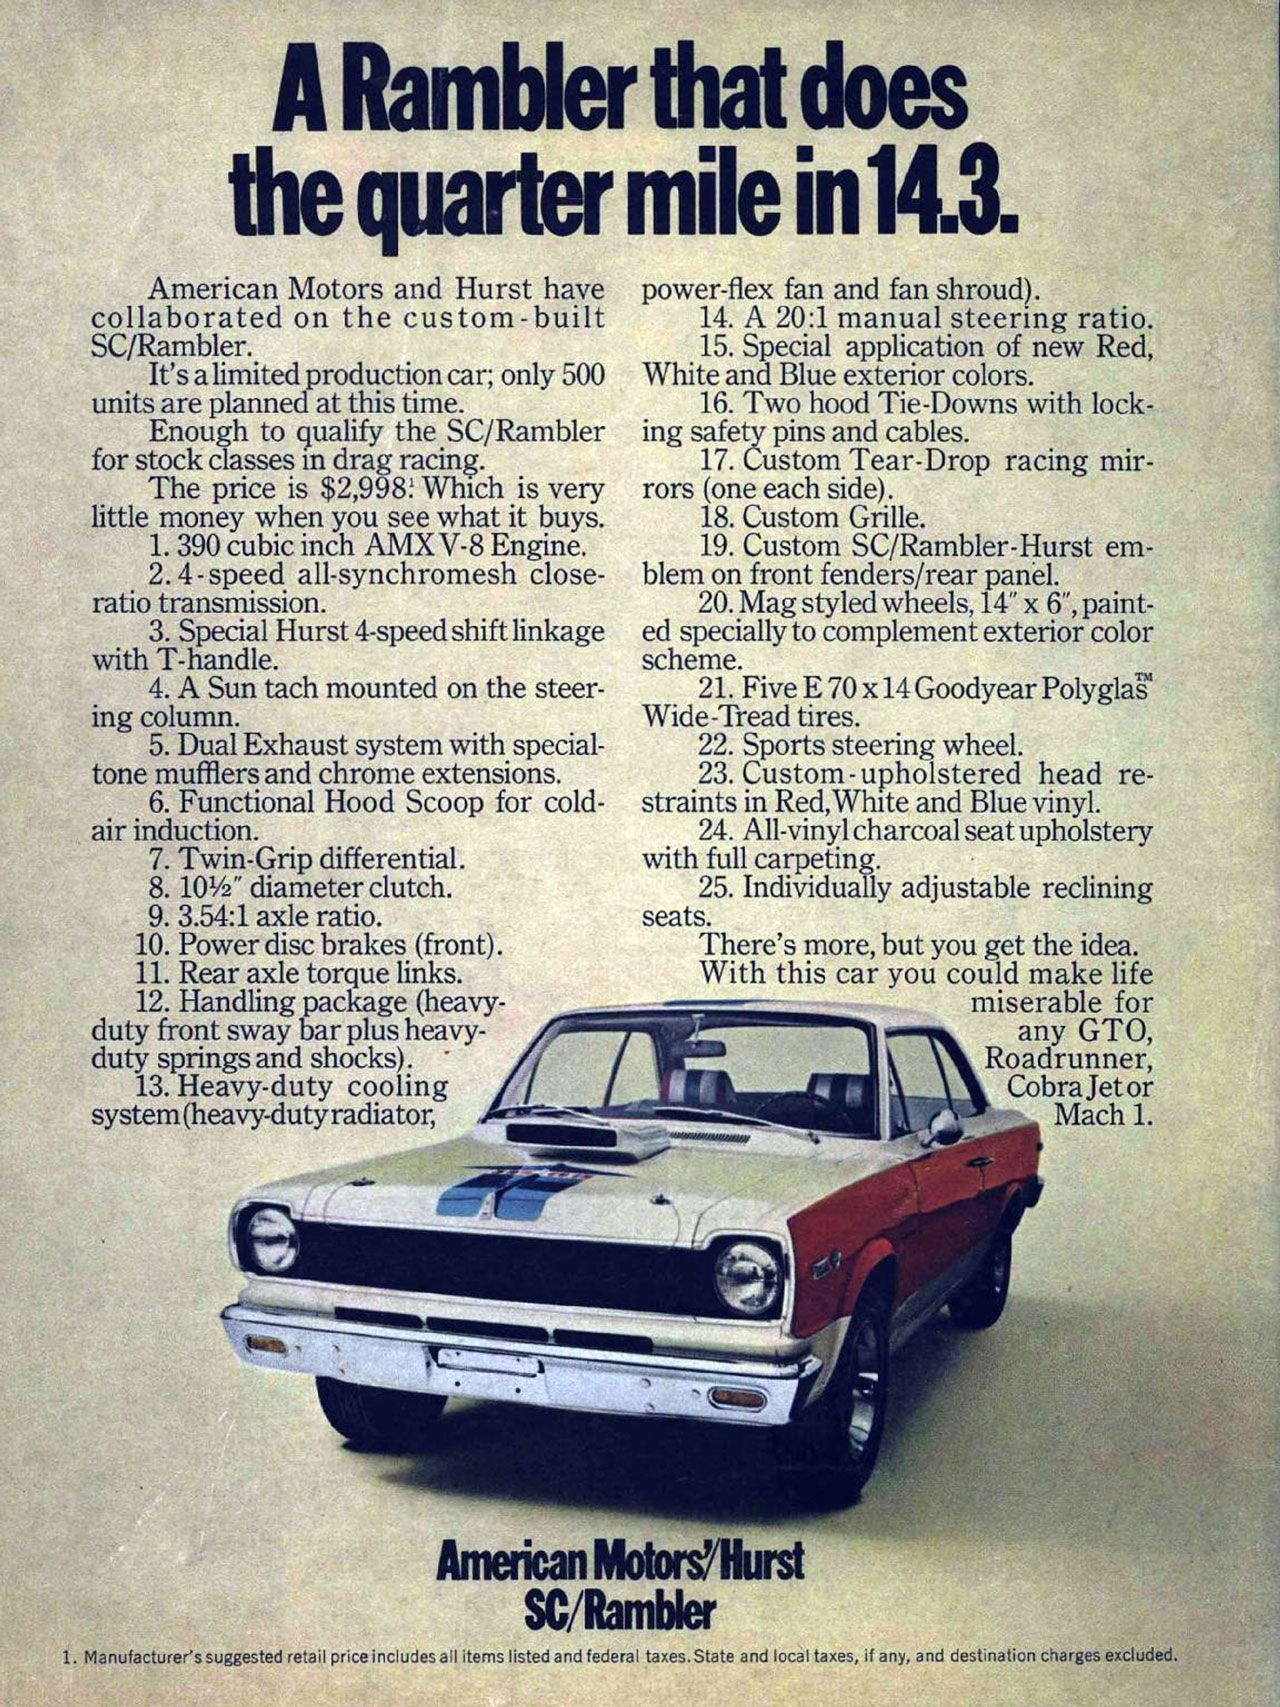 The American Motors Hurst SC/Rambler. A Rambler that does the quarter mile in 14.3. American Motors and Hurst have collaborated on the custom-built SC/Rambler. It's a limited production car; only 500 units are planned at this time. Enough to qualify the SC/Rambler for stock classes in drag racing. The price is $2,998! Which is very little money when you see what it buys. 1. 390 cubic inch AMX V-8 Engine. 2.4 - speed all-synchromesh close-ratio transmission. 3. Special Hurst 4-speed shift linkage with T-handle. 4. A Sun tach mounted on the steer-ing column. 5. Dual Exhaust system with special-tone mufflers and chrome extensions. 6. Functional Hood Scoop for cold-air induction. 7. Twin-Grip differential. 8. 101/2' diameter clutch. 9. 3.54:1 axle ratio. 10. Power disc brakes (front). 11. Rear axle torque links. 12. Handling package (heavy-duty front sway bar plus heavy-duty springs and shocks). • 13. Heavy-duty cooling system (heavy-duty radiator, power-flex fan and fan shroud). 14. A 20:1 manual steering ratio. 15. Special application of new Red, White and Blue exterior colors. 16. Two hood Tie-Downs with lock-ing safety pins and cables. 17. Custom Tear-Drop racing mir-rors (one each side). 18. Custom Grille. 19. Custom SC/Rambler-Hurst em-blem on front fenders/rear panel. 20. Mag styled wheels, 14' x 6', paint-ed specially to complement exterior color scheme. 21. Five E 70 x 14 Goodyear PolyglaiS' Wide-Tread tires. 22. Sports steering wheel. 23. Custom - upholstered head re-straints in Red,White and Blue vinyl. 24. All-vinyl charcoal seat upholstery with full carpeting. 25. Individually adjustable reclining seats. There's more, but you get the idea. With this car you could make life miserable for any GTO, Roadrunner, Cobra Jet or Mach 1. *ft American Motors/Hurst SC/Rambler 1. Manufacturer's suggested retail price includes all items listed and federal taxes. State and local taxes, if any, and destination charges excluded.